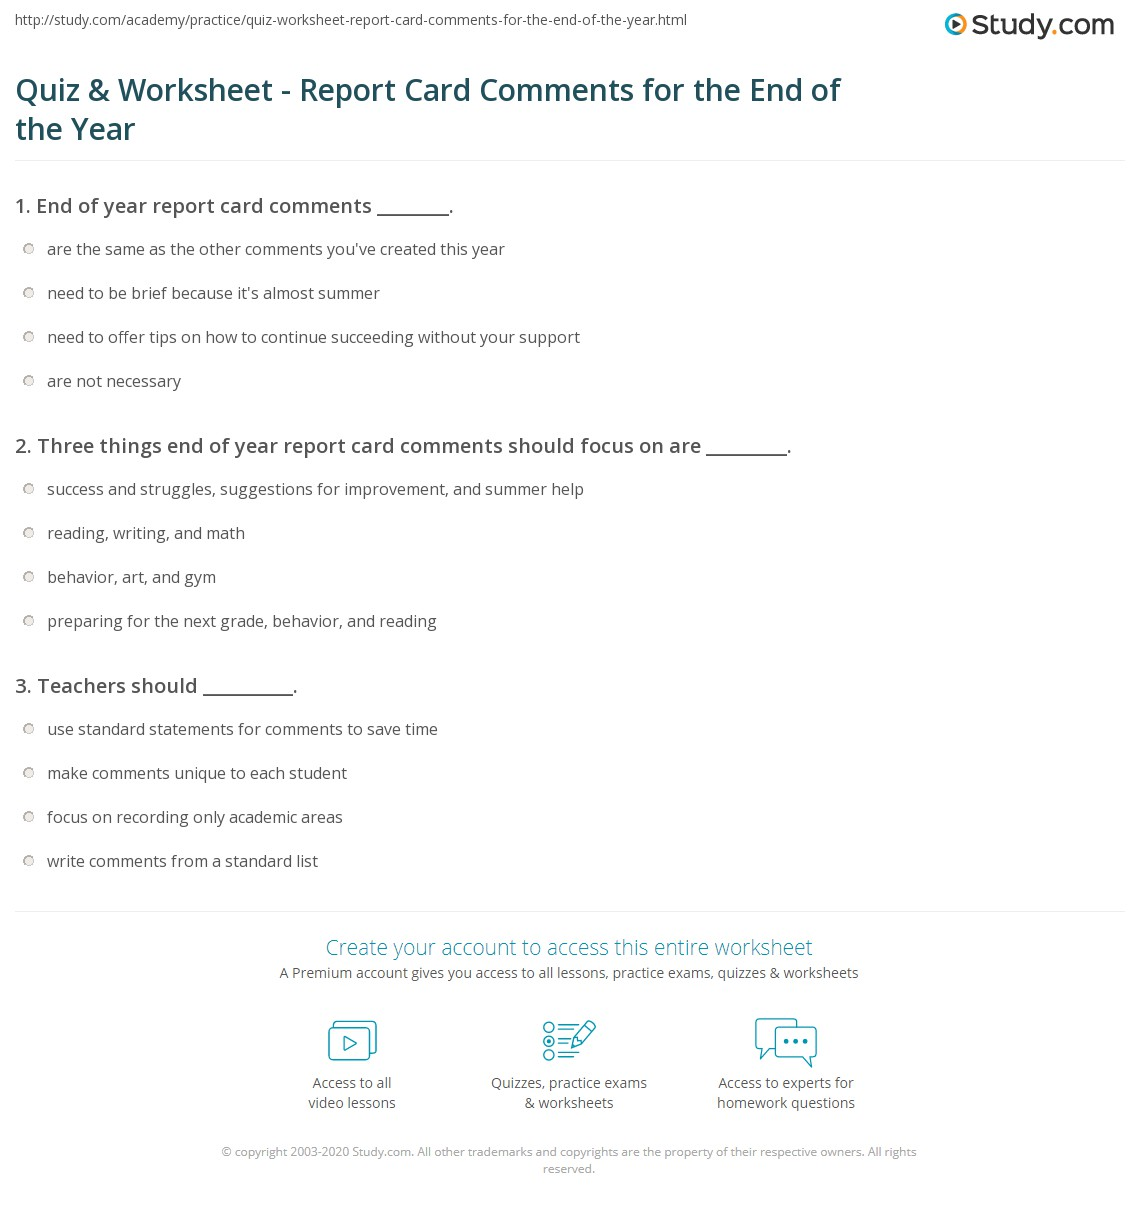 quiz worksheet report card comments for the end of the year. Black Bedroom Furniture Sets. Home Design Ideas